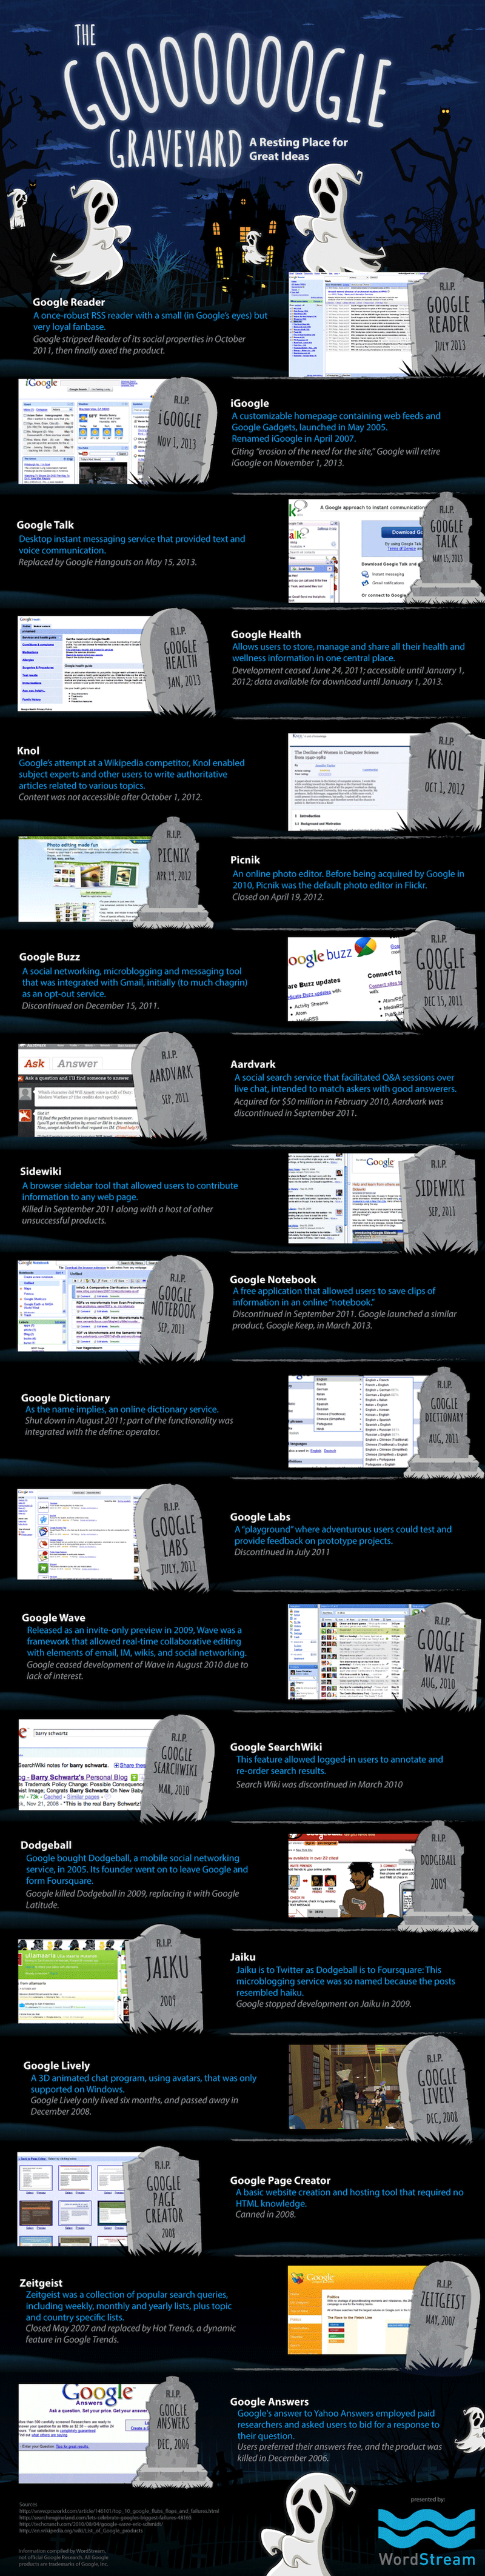 All the Google Products That Google Itself Has Killed Dead